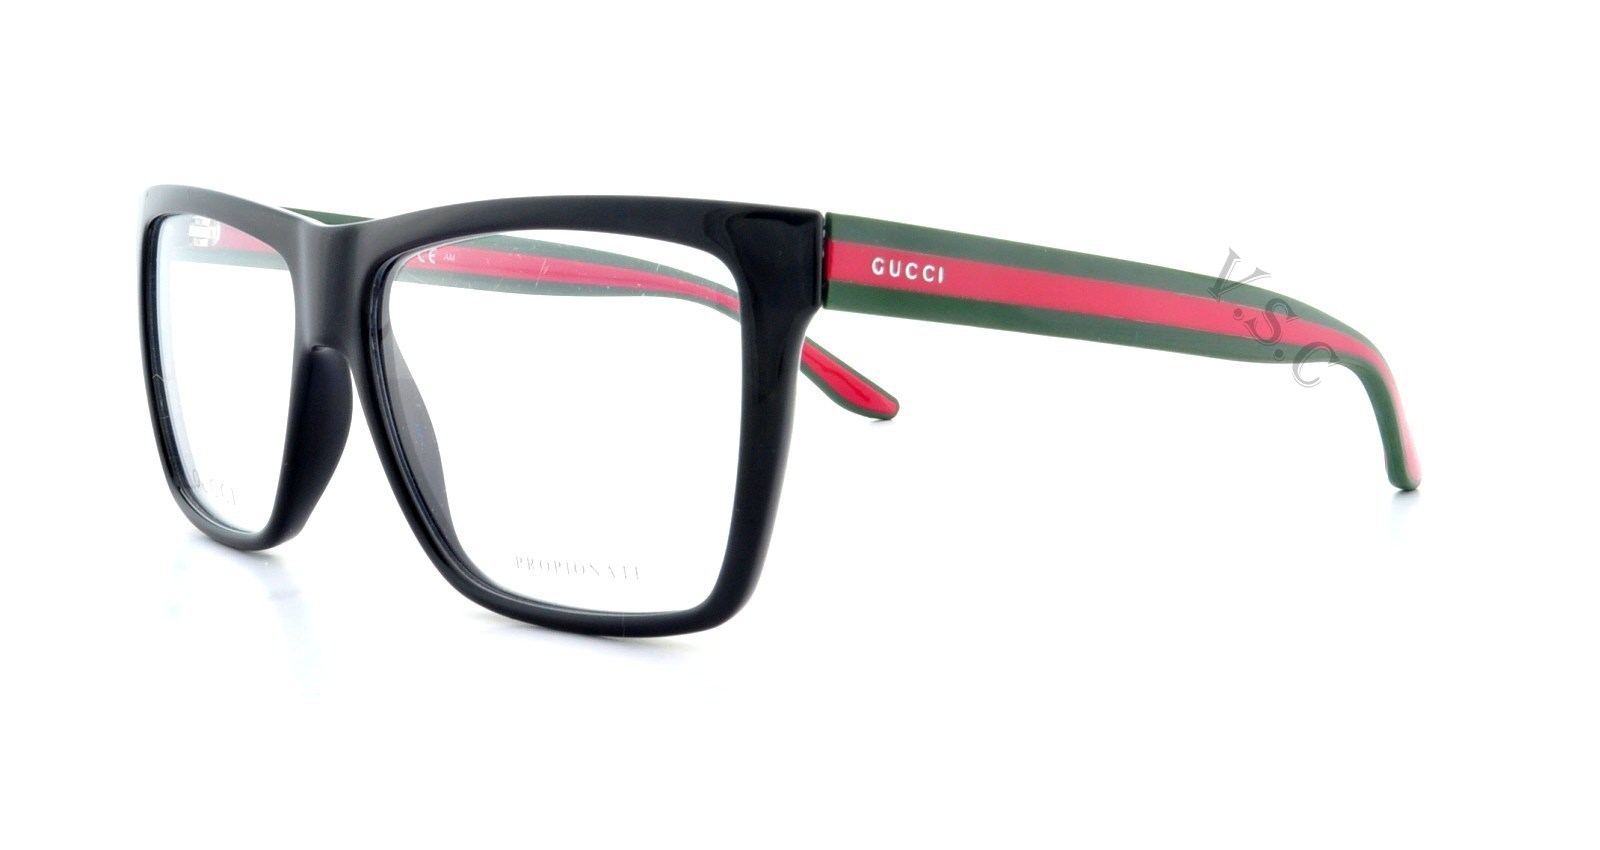 Fake Gucci Eyeglass Frames : GUCCI 1008 EYEGLASSES GG EYE GLASSES 51N SHINY BLACK - RED ...